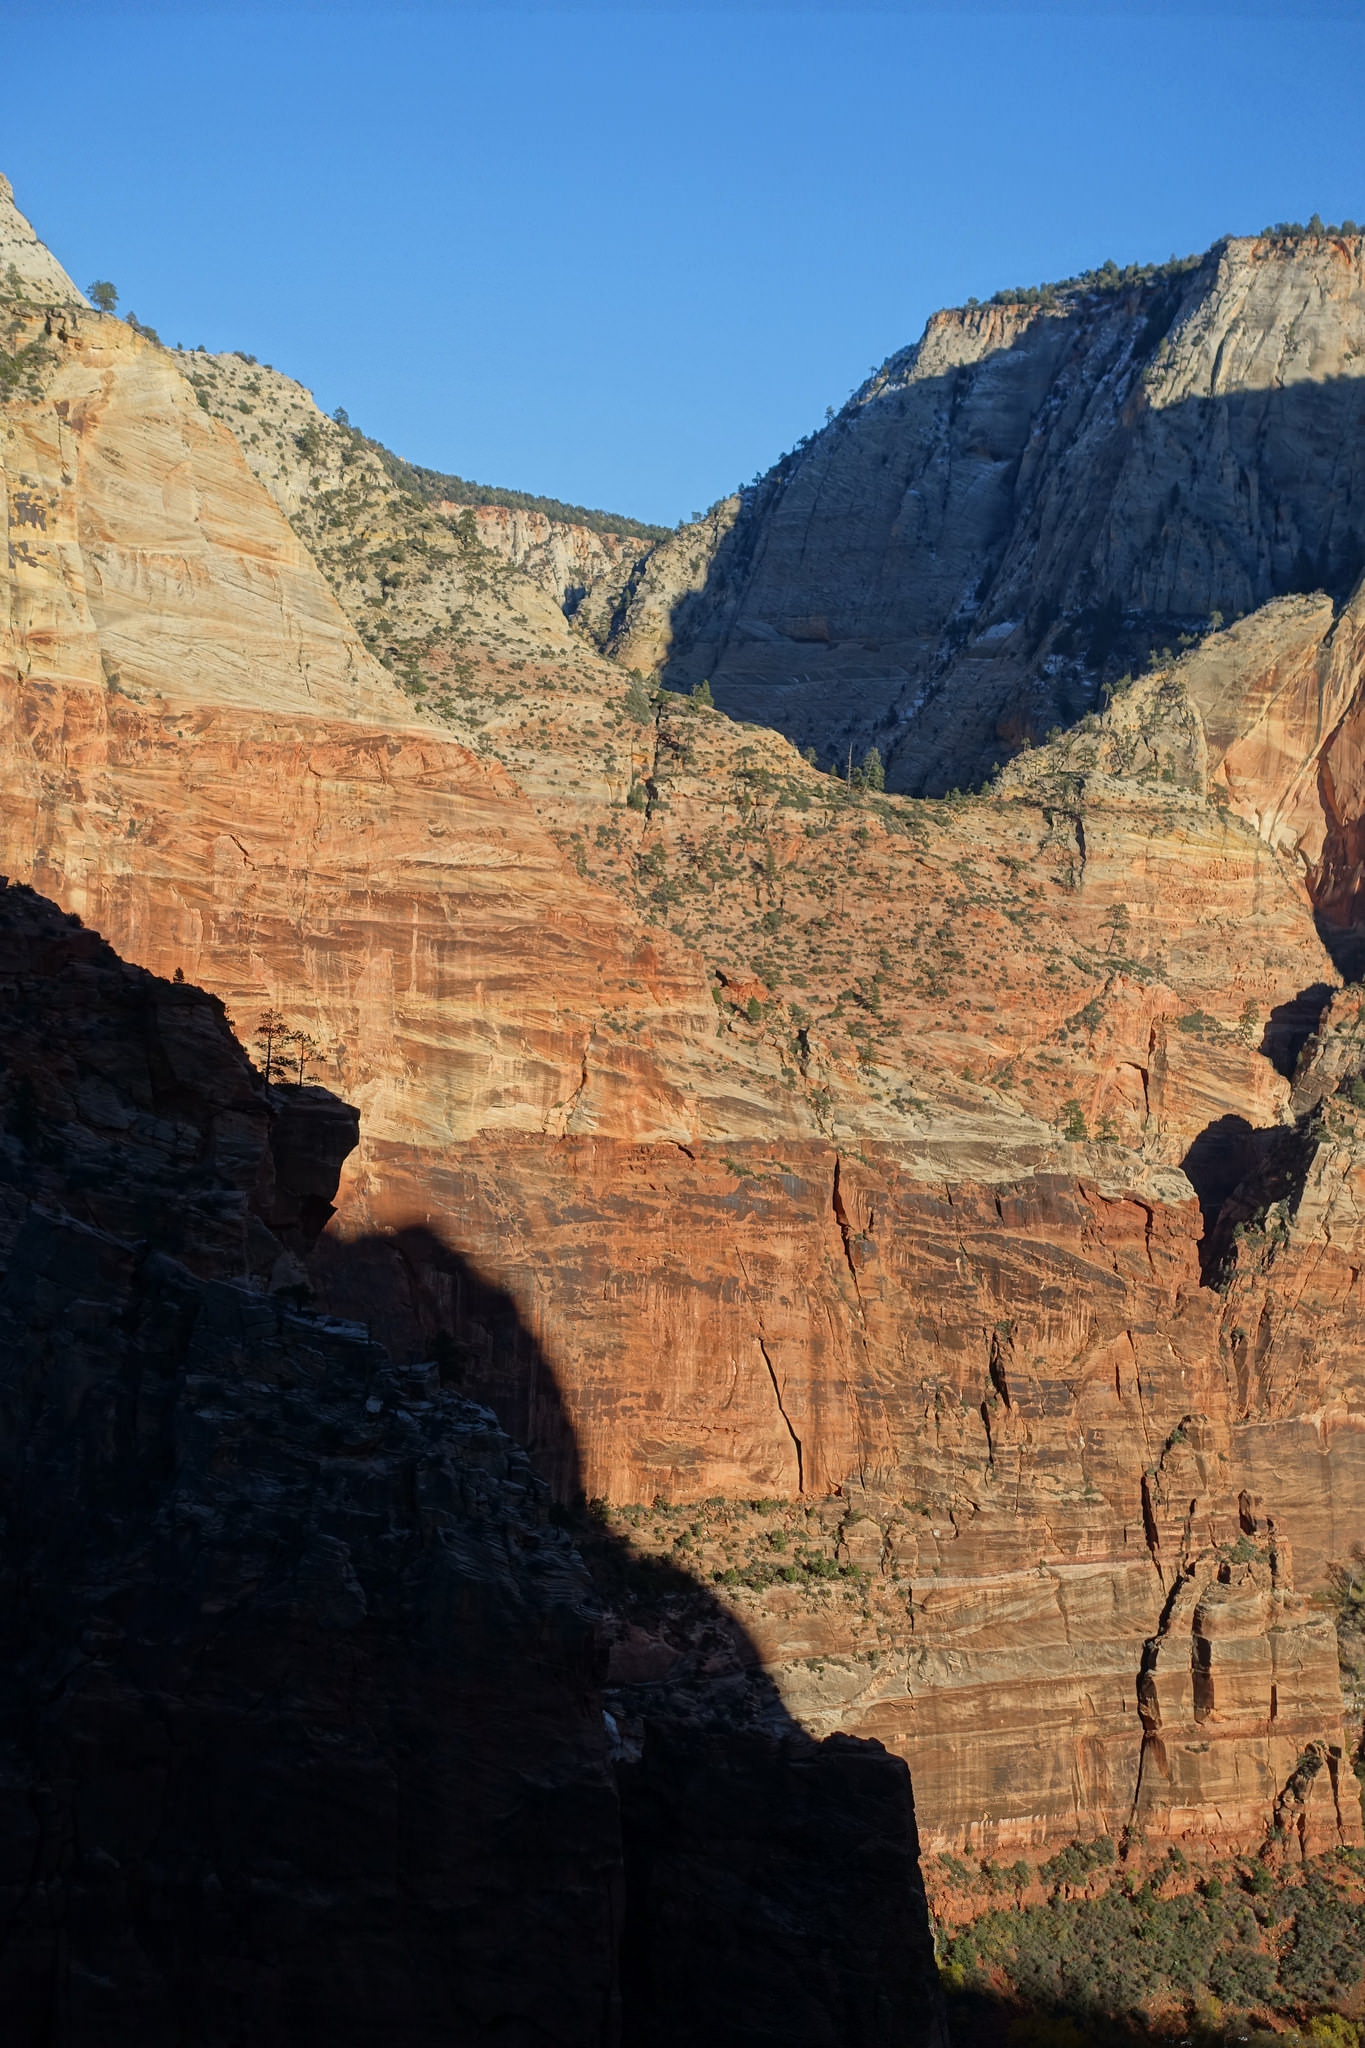 Looking toward Echo Canyon from Angel's Landing